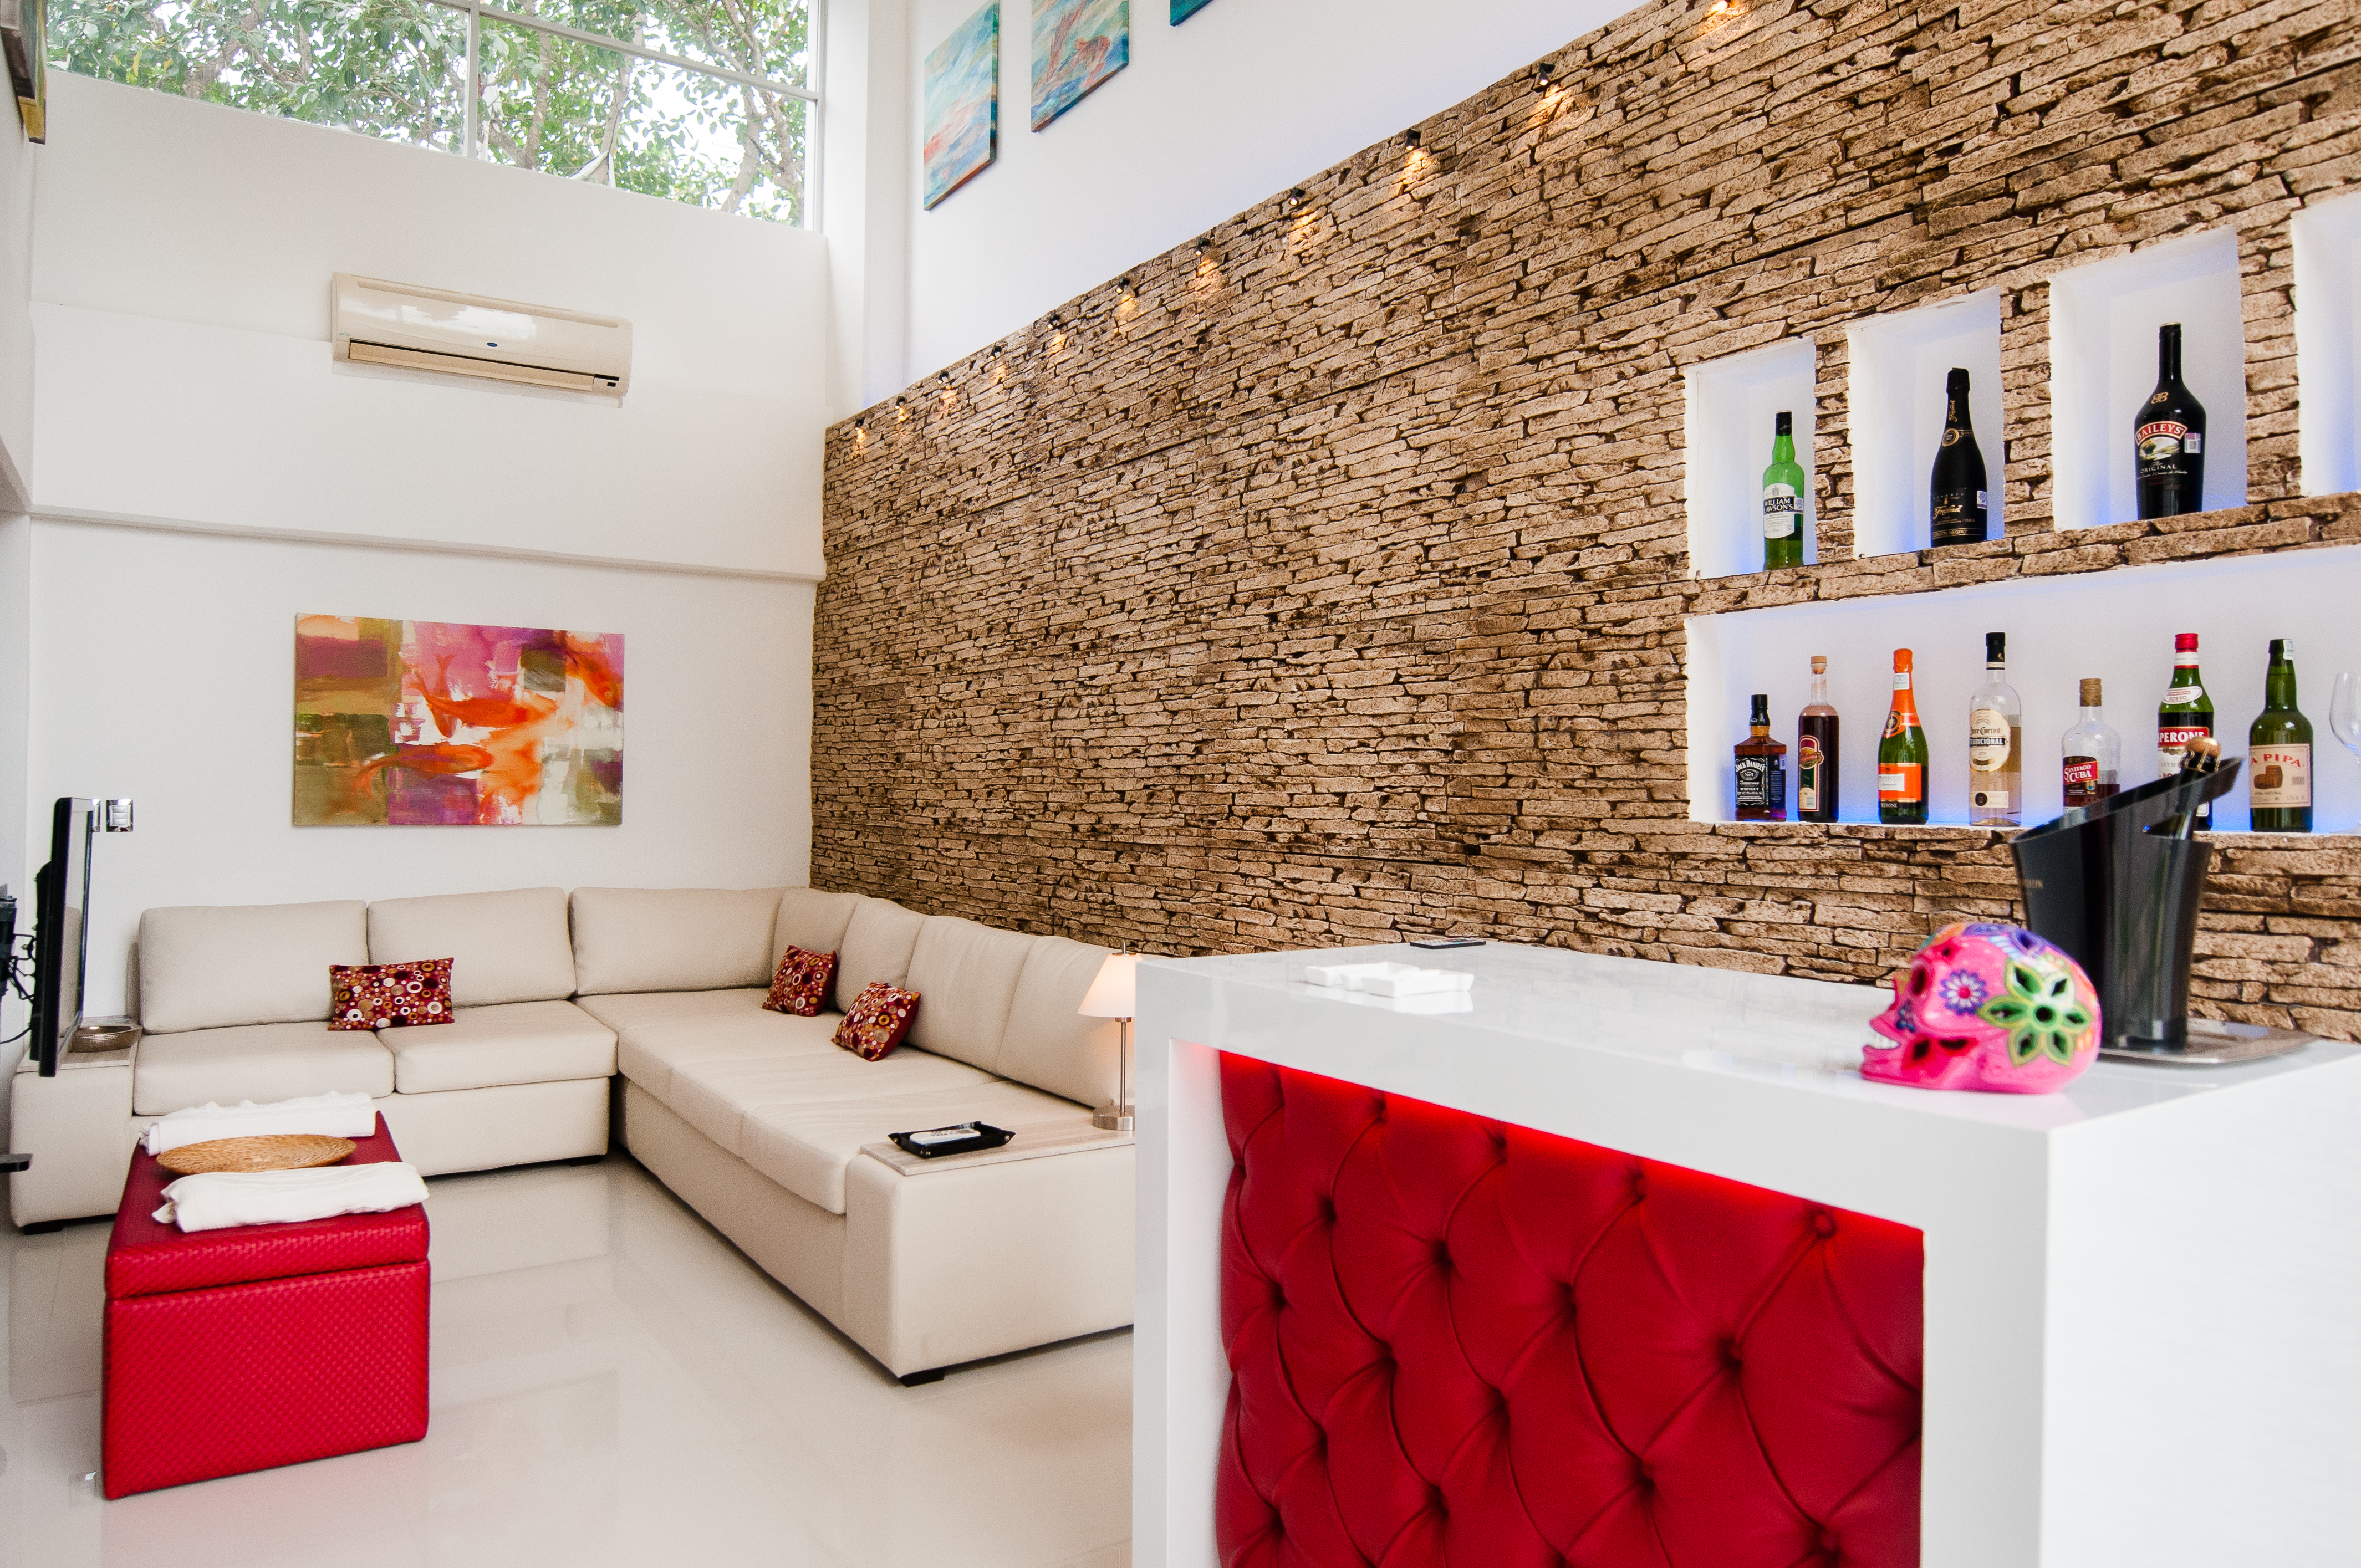 New Luxury Cancun Condo Near The Beach Lofts For Rent In Cancun Quintana Roo Mexico